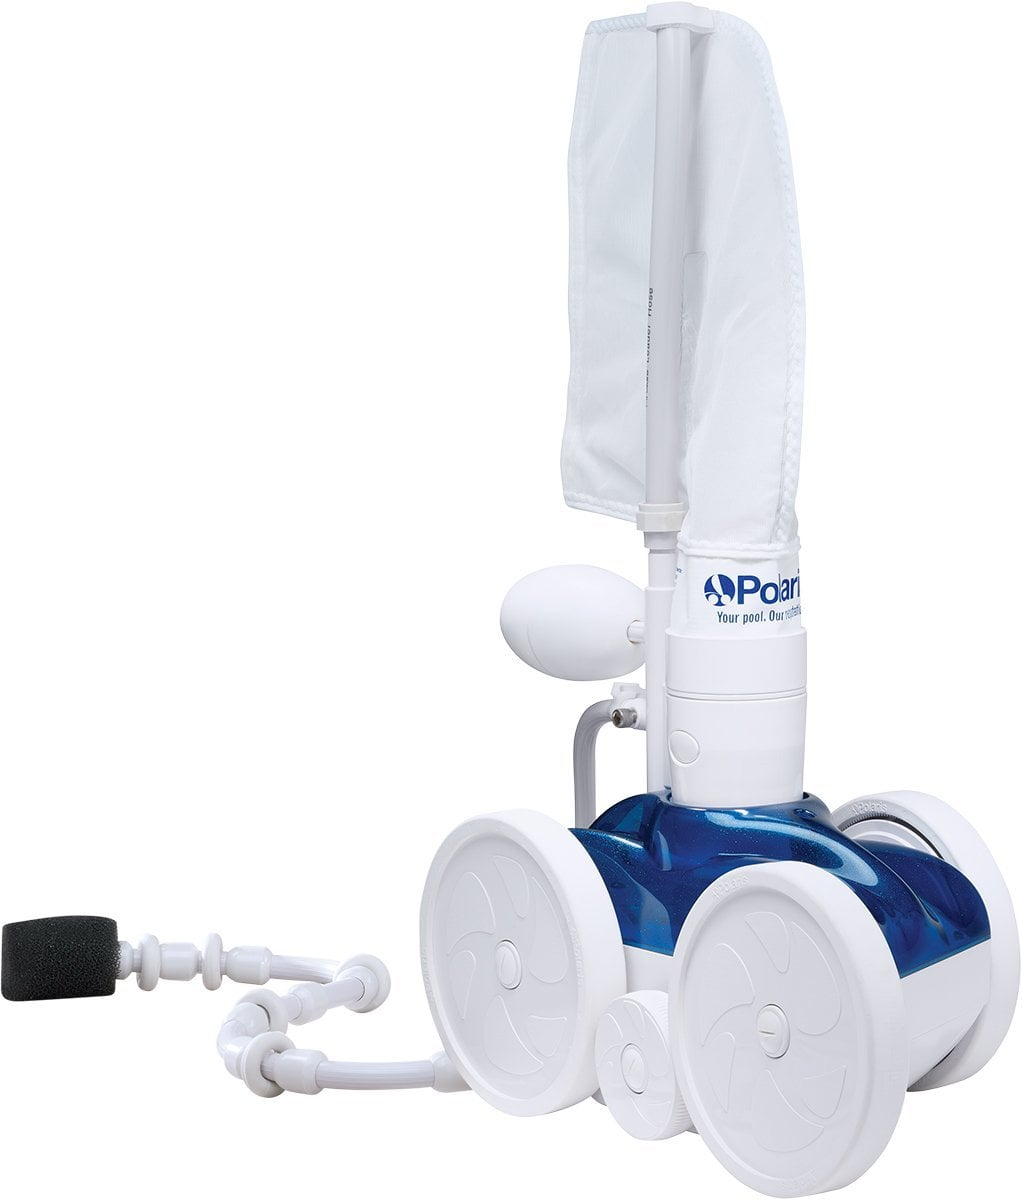 Polaris-Vac-Sweep-Pool-Cleaner.jpg?